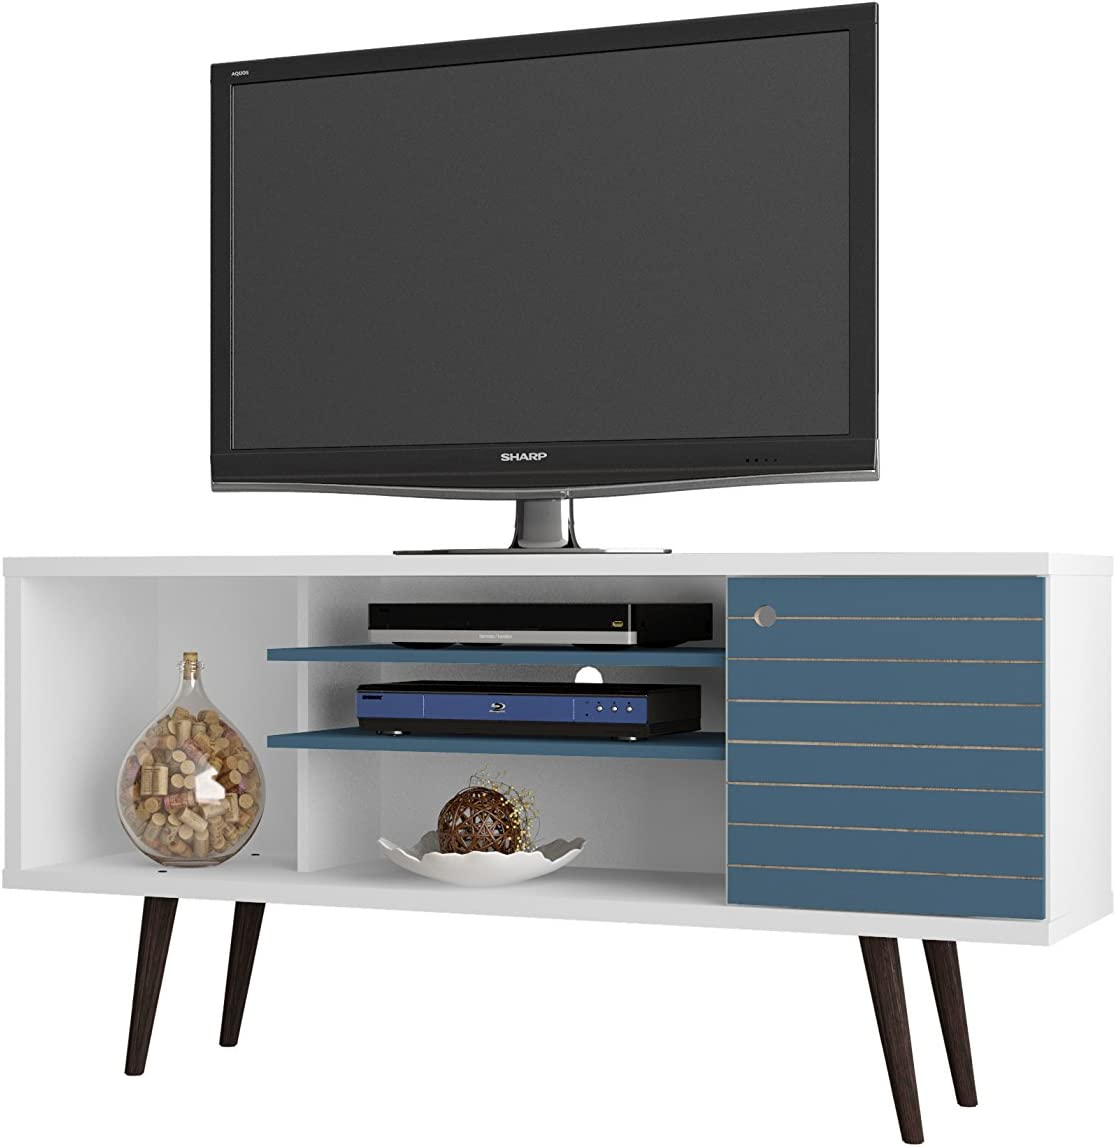 Manhattan Comfort Liberty Collection Mid Century Modern TV Stand With One Cabinet and Two Open Shelves With Splayed Legs, White/Blue